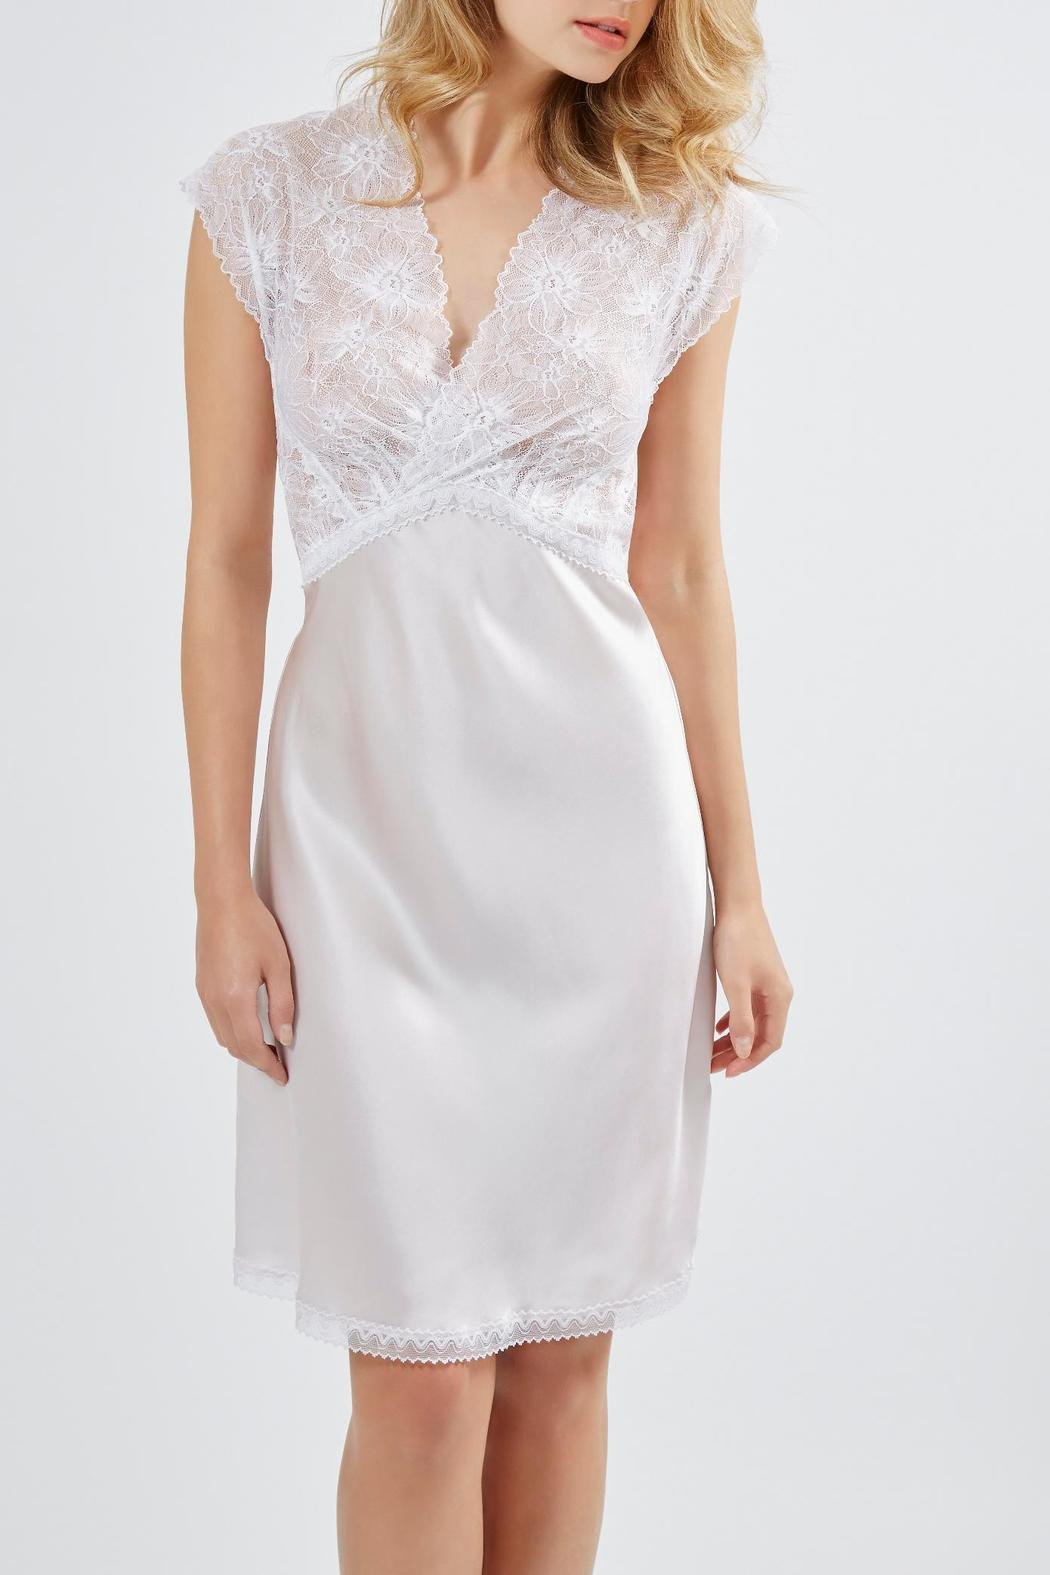 Mimi Holliday Silk Chemise - Main Image